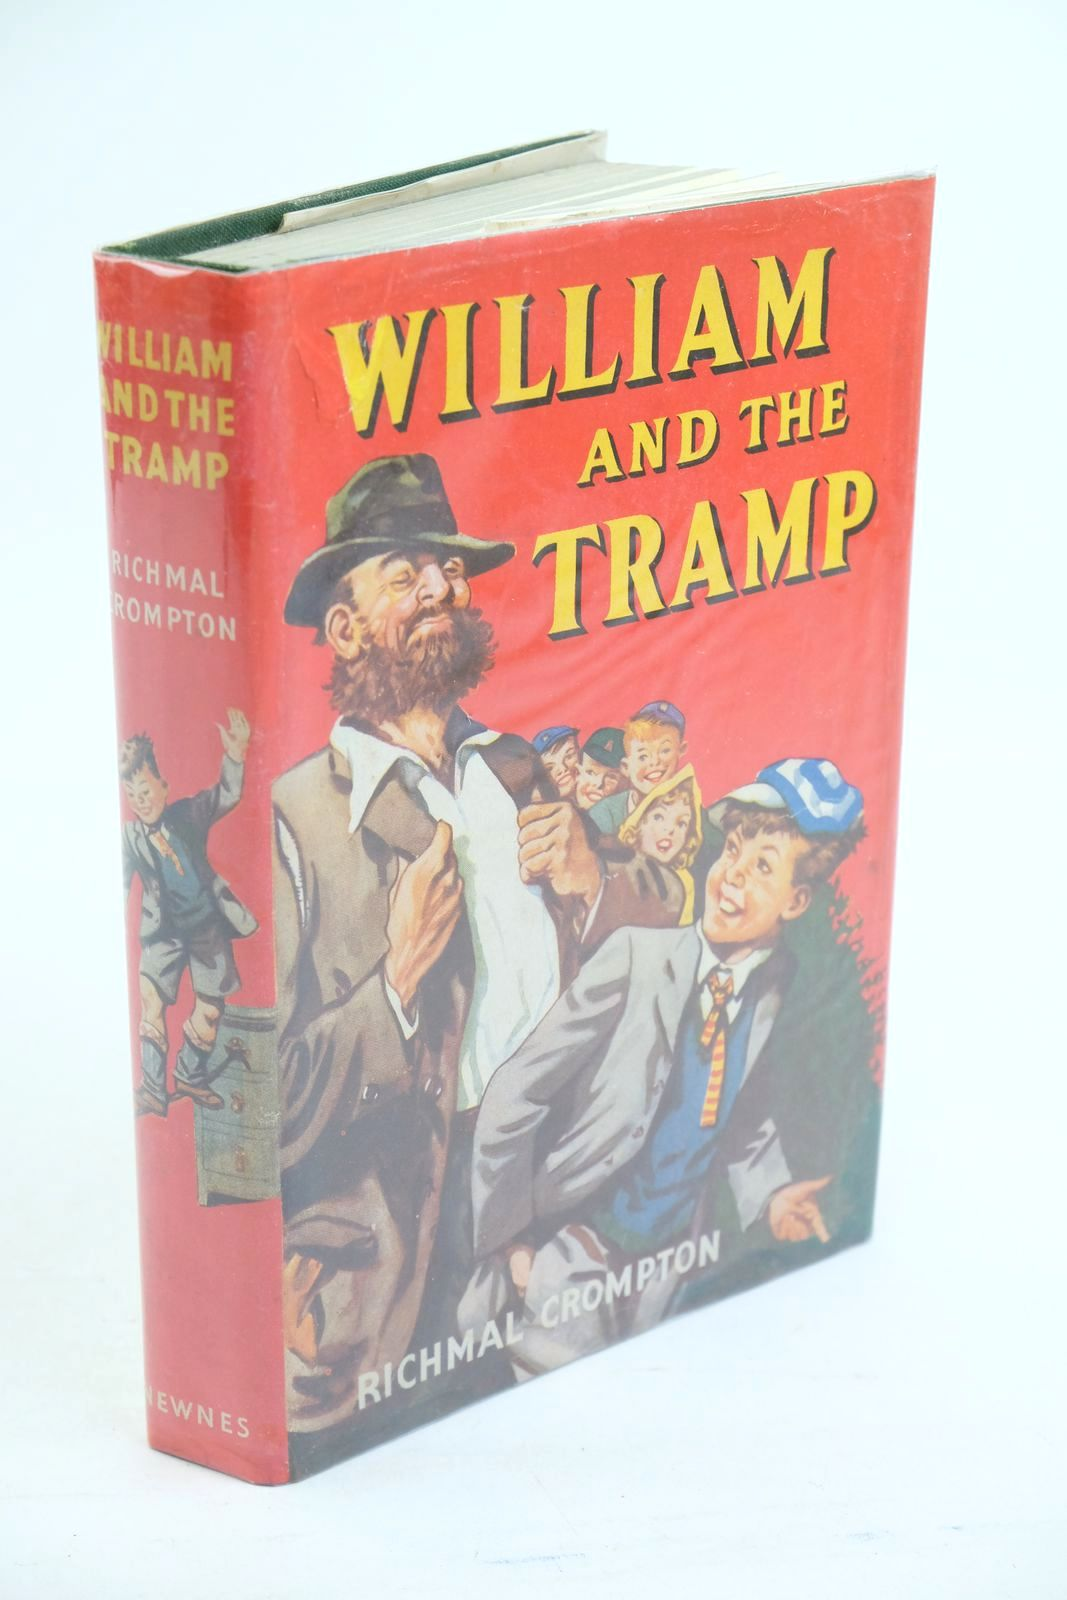 Photo of WILLIAM AND THE TRAMP written by Crompton, Richmal illustrated by Henry, Thomas published by George Newnes Ltd. (STOCK CODE: 1320870)  for sale by Stella & Rose's Books